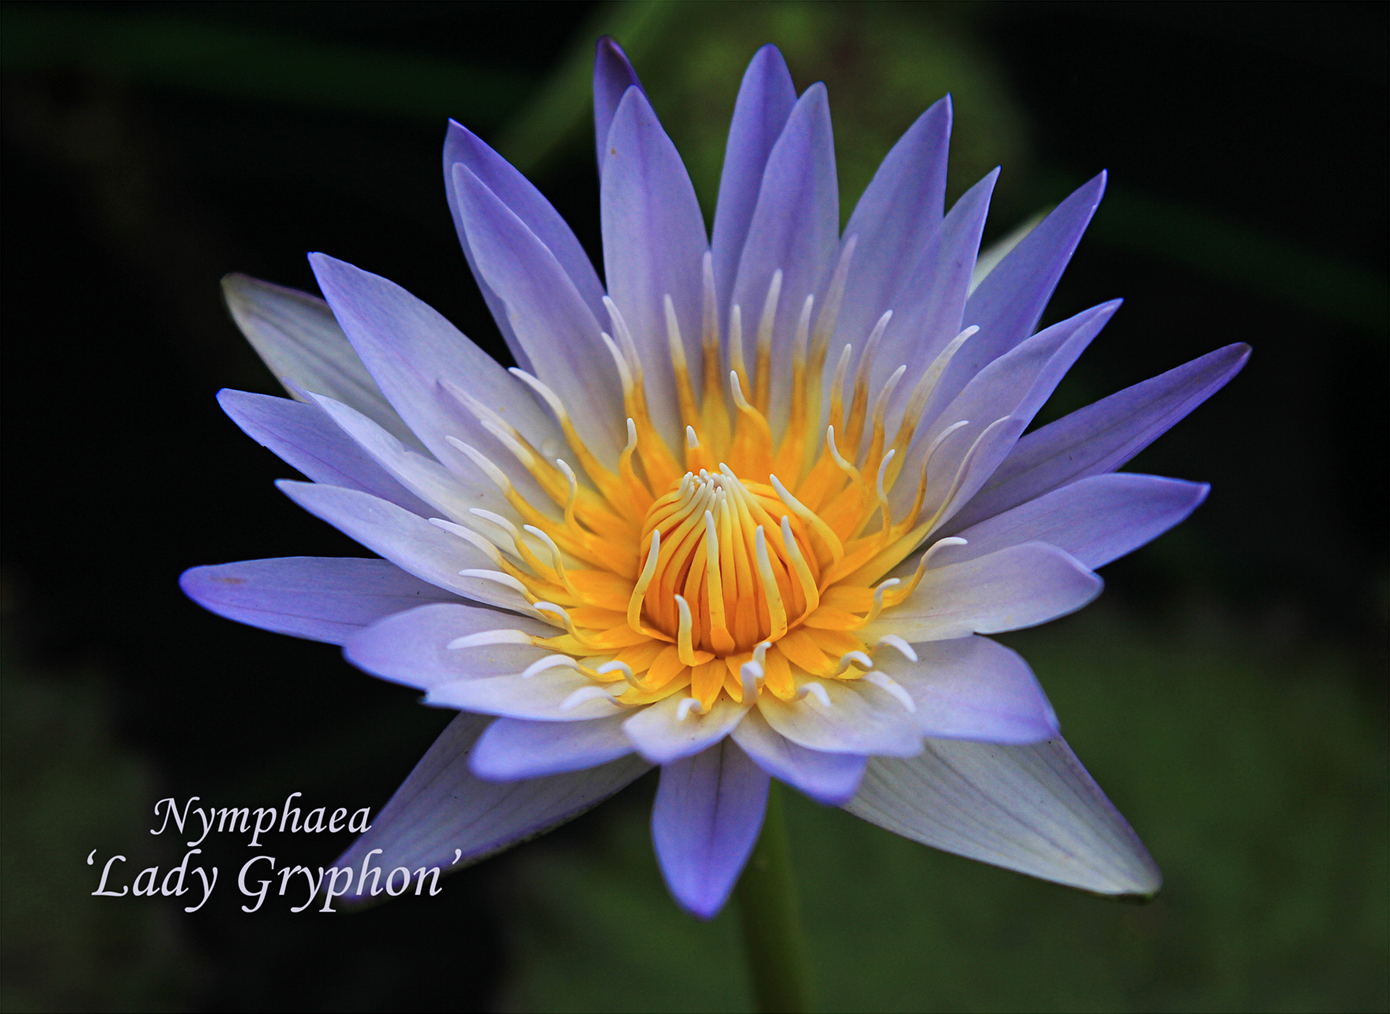 Nymphaea 'Lady Gryphon'